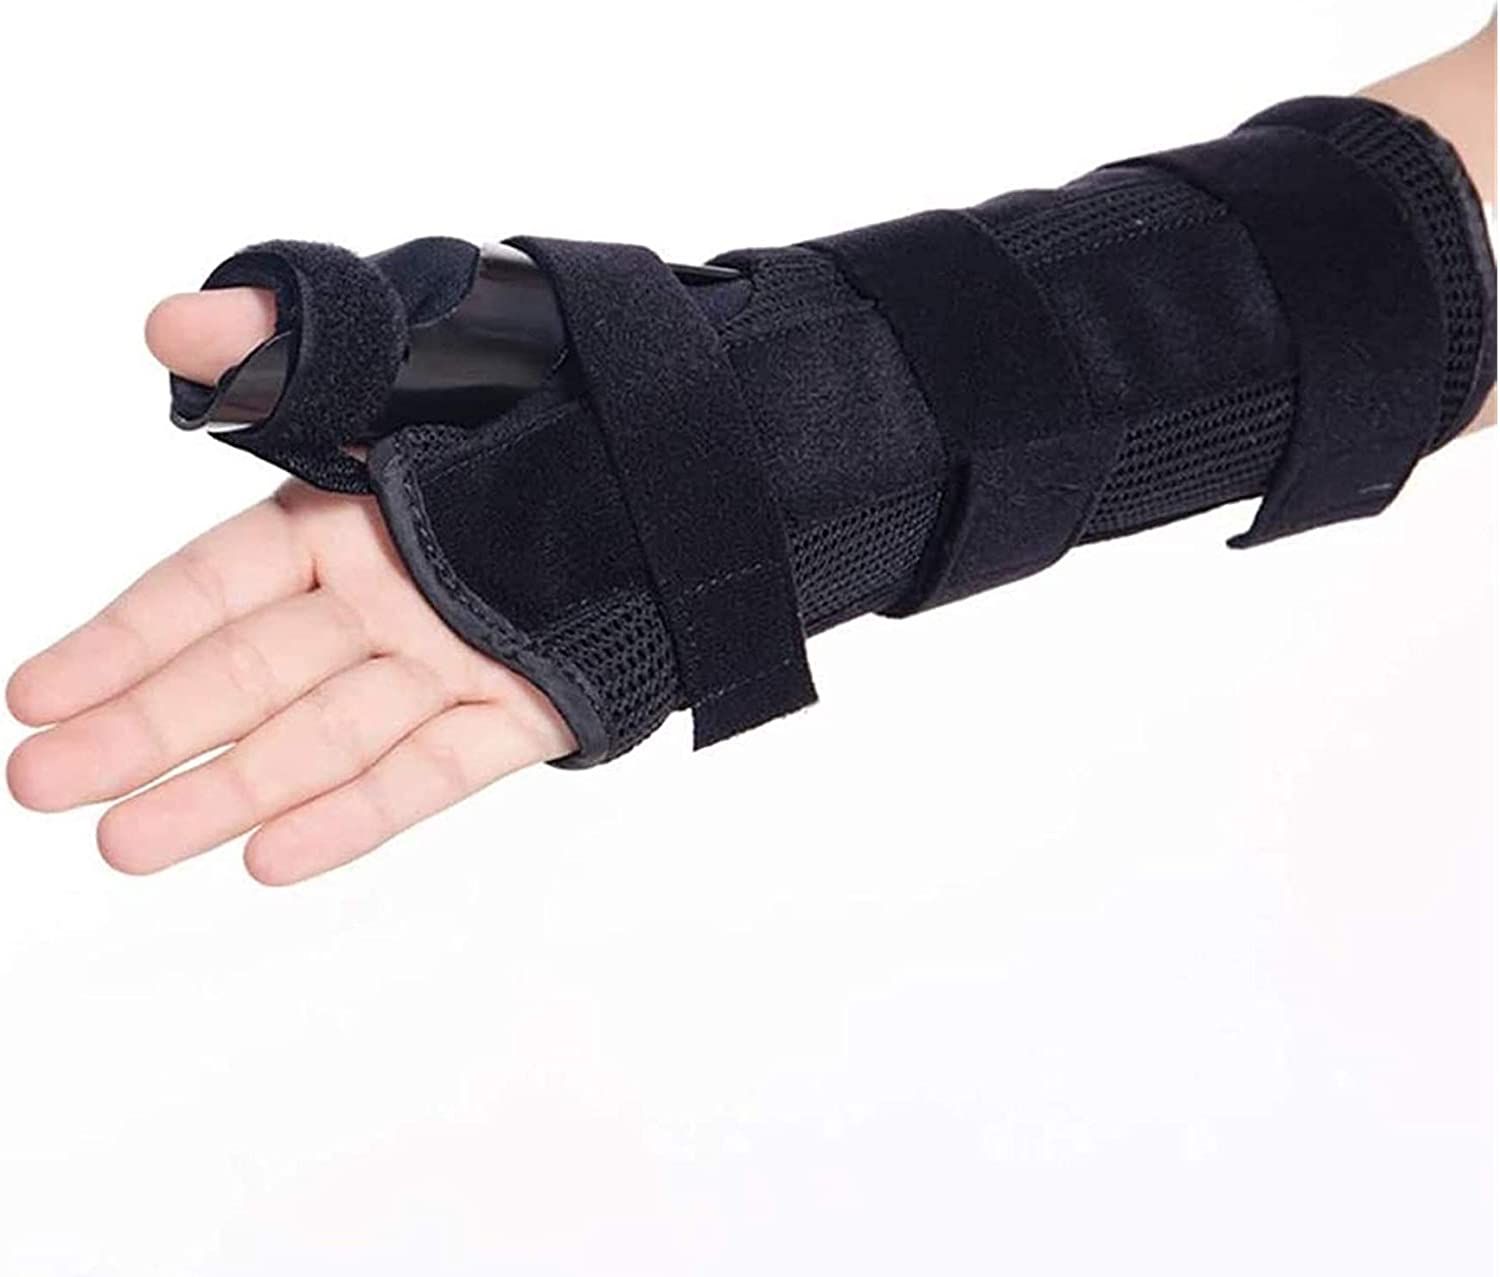 FGUD Portable Complete Free Shipping Cheap sale Finger Support Adjustable Carpal Immobilizer Tunne